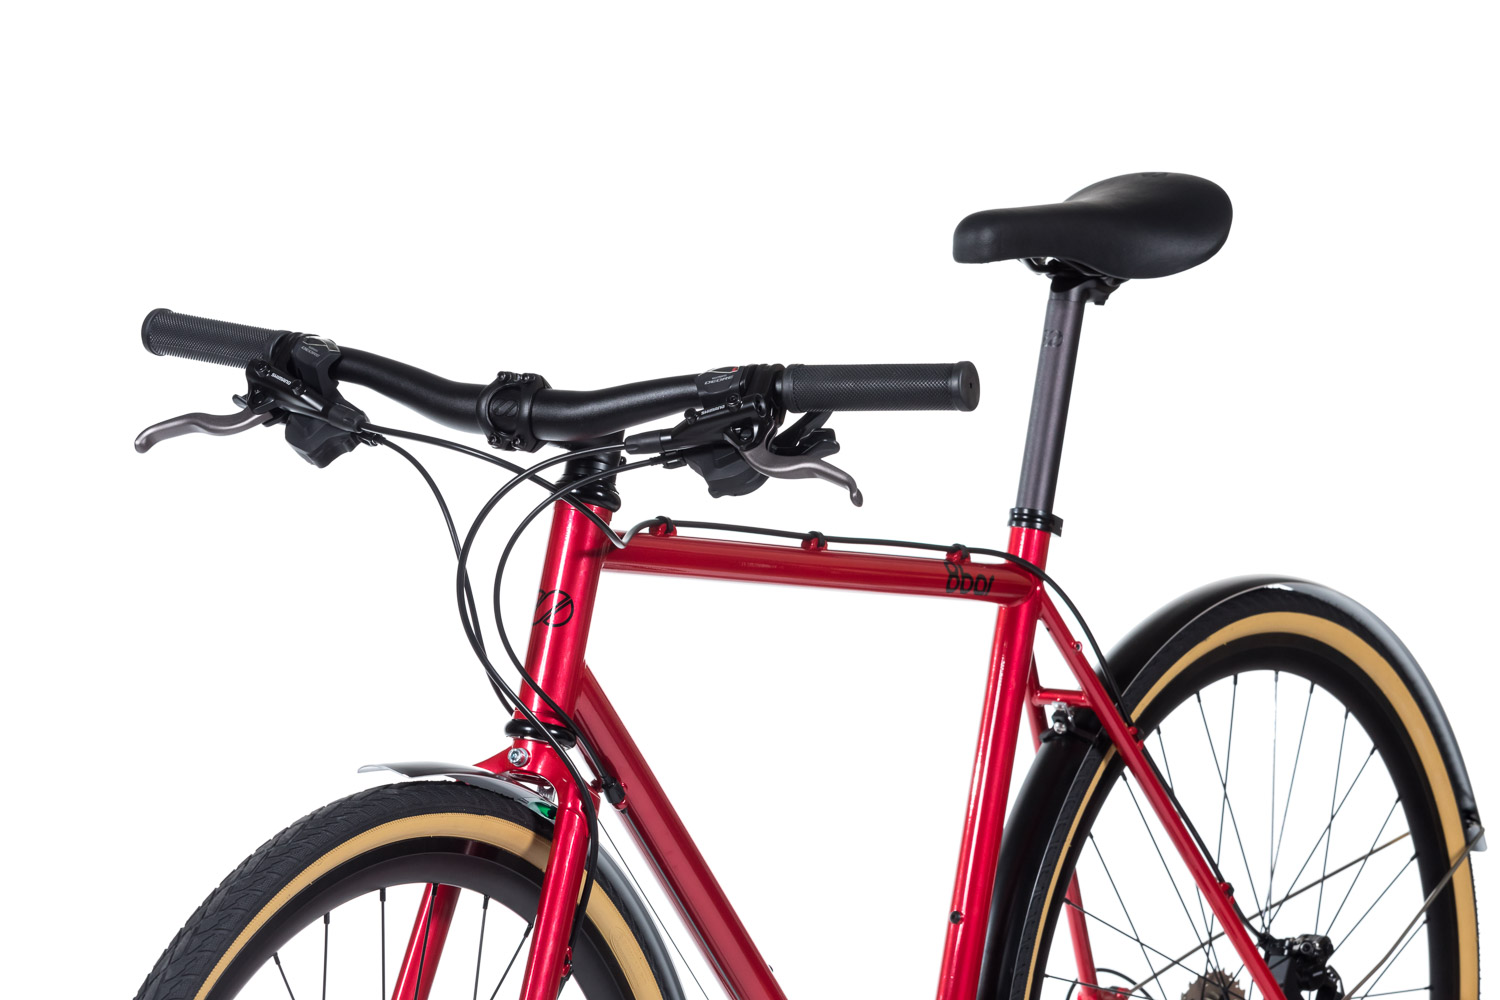 8bar complete bike mitte steel red trekking comp studio 6 - MITTE STEEL Trekking - Comp